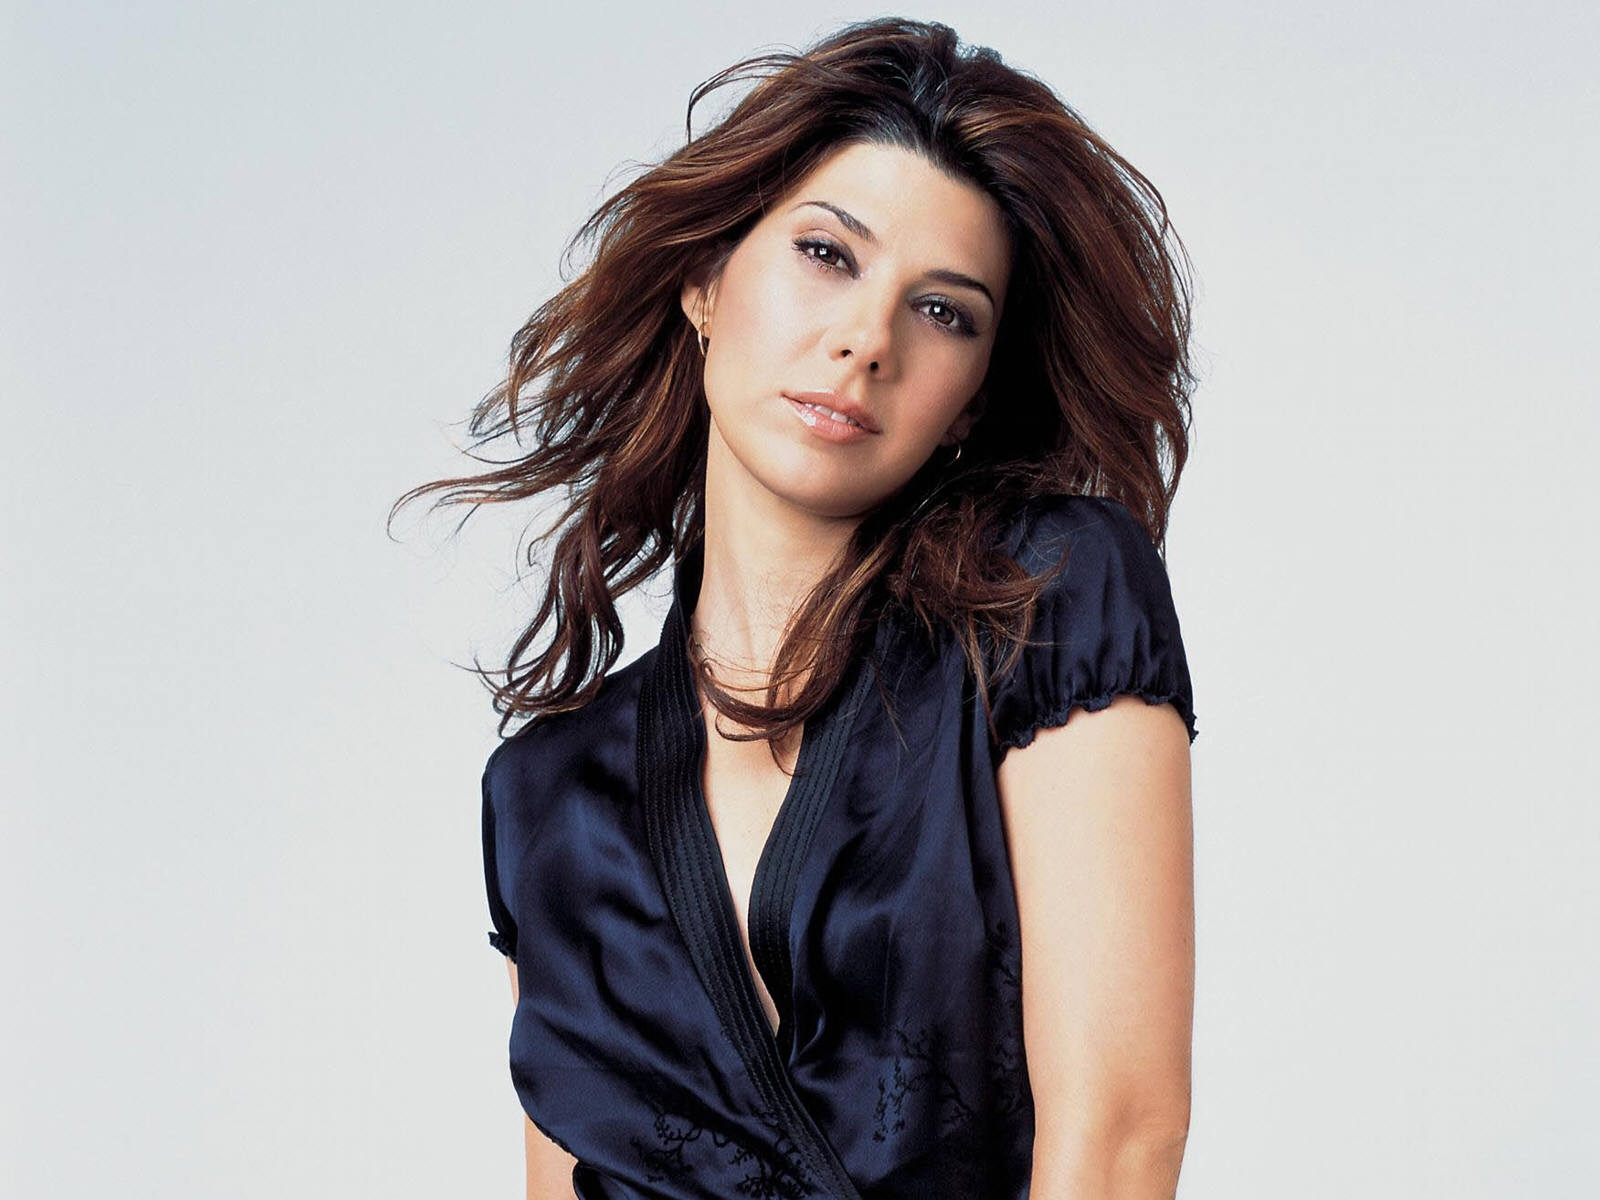 marisa tomei 1992marisa tomei 2016, marisa tomei 2017, marisa tomei seinfeld, marisa tomei 2015, marisa tomei four rooms, marisa tomei filmography, marisa tomei movies, marisa tomei toxic avenger, marisa tomei imdb, marisa tomei films, marisa tomei only you, marisa tomei zimbio, marisa tomei site, marisa tomei 1995, marisa tomei instagram, marisa tomei wdw, marisa tomei 1992, marisa tomei workout, marisa tomei alltimers, marisa tomei best movies